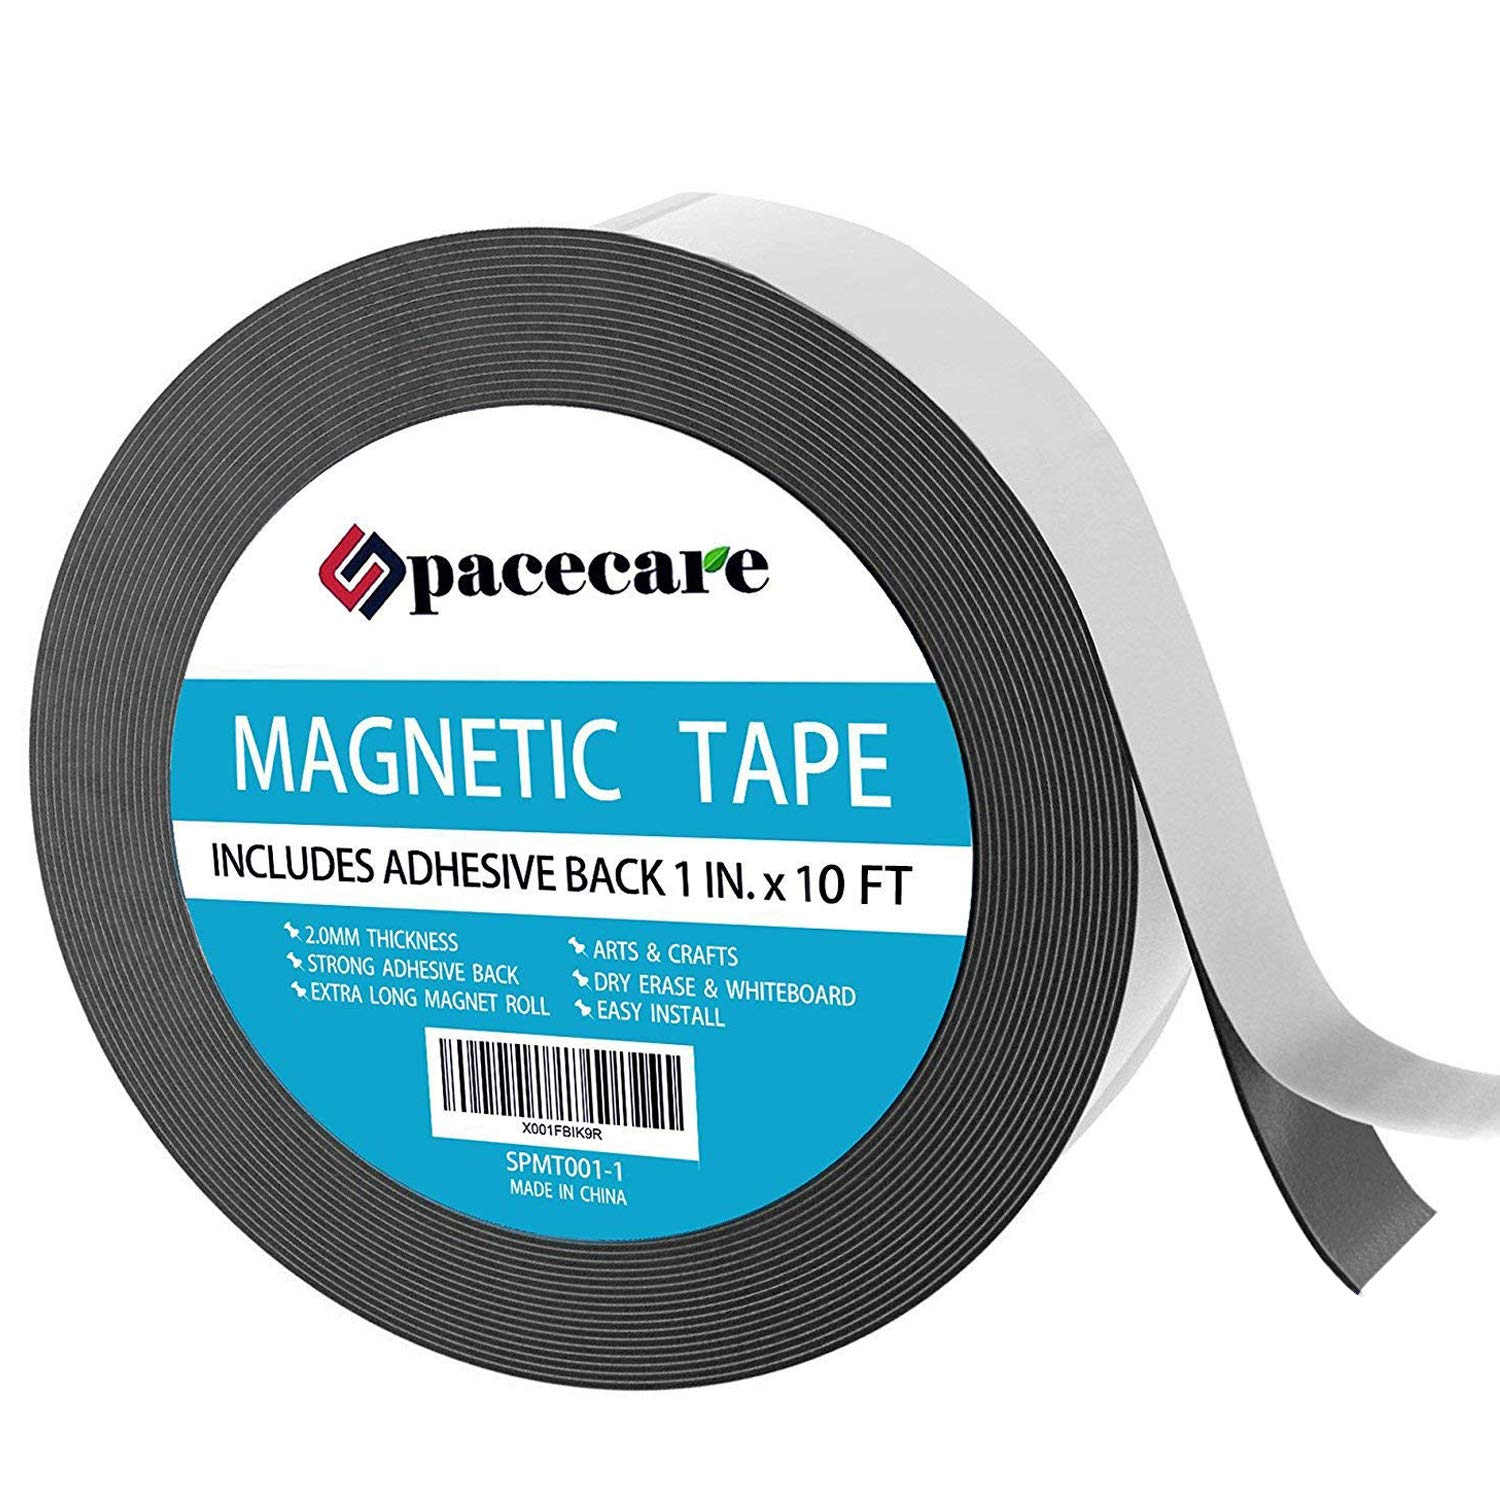 SPACECARE Magnetic Tape 1 x 16.6 Feet Incredibly Strong & Flexible - Peel & Stick Adhesive Backing - Easy to Cut - Strong Magnet Flux